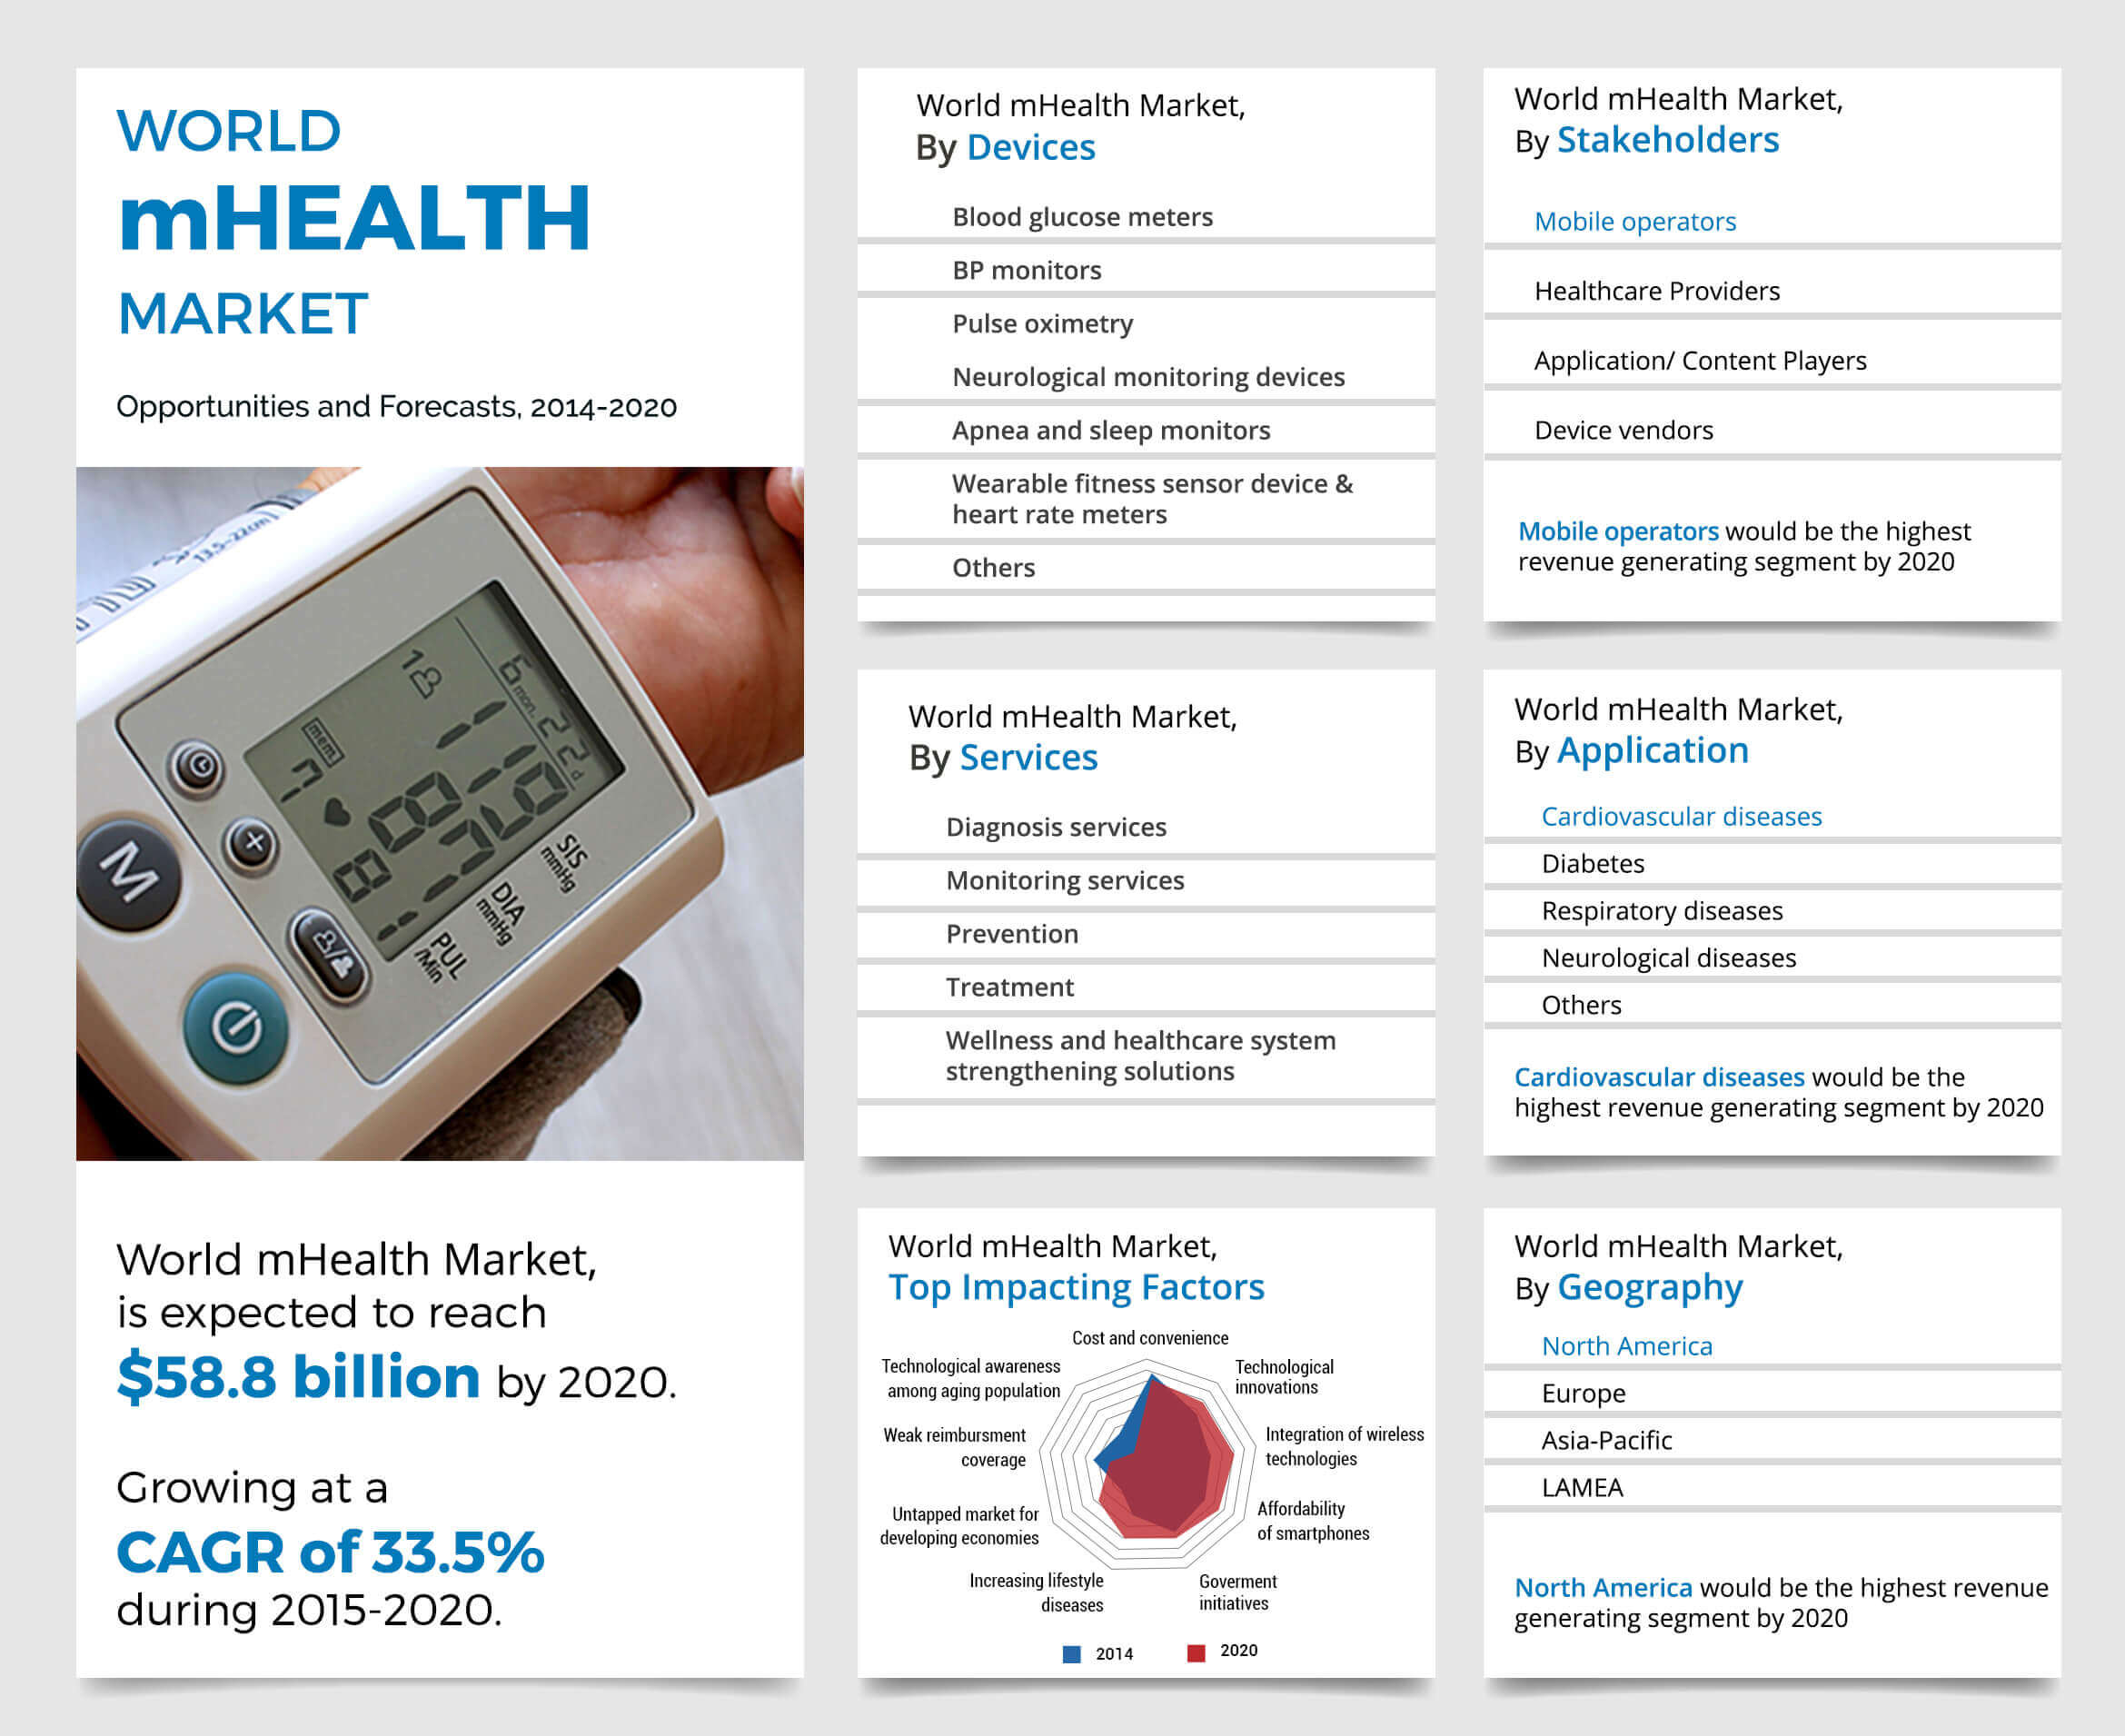 global-mHealth-market.jpg